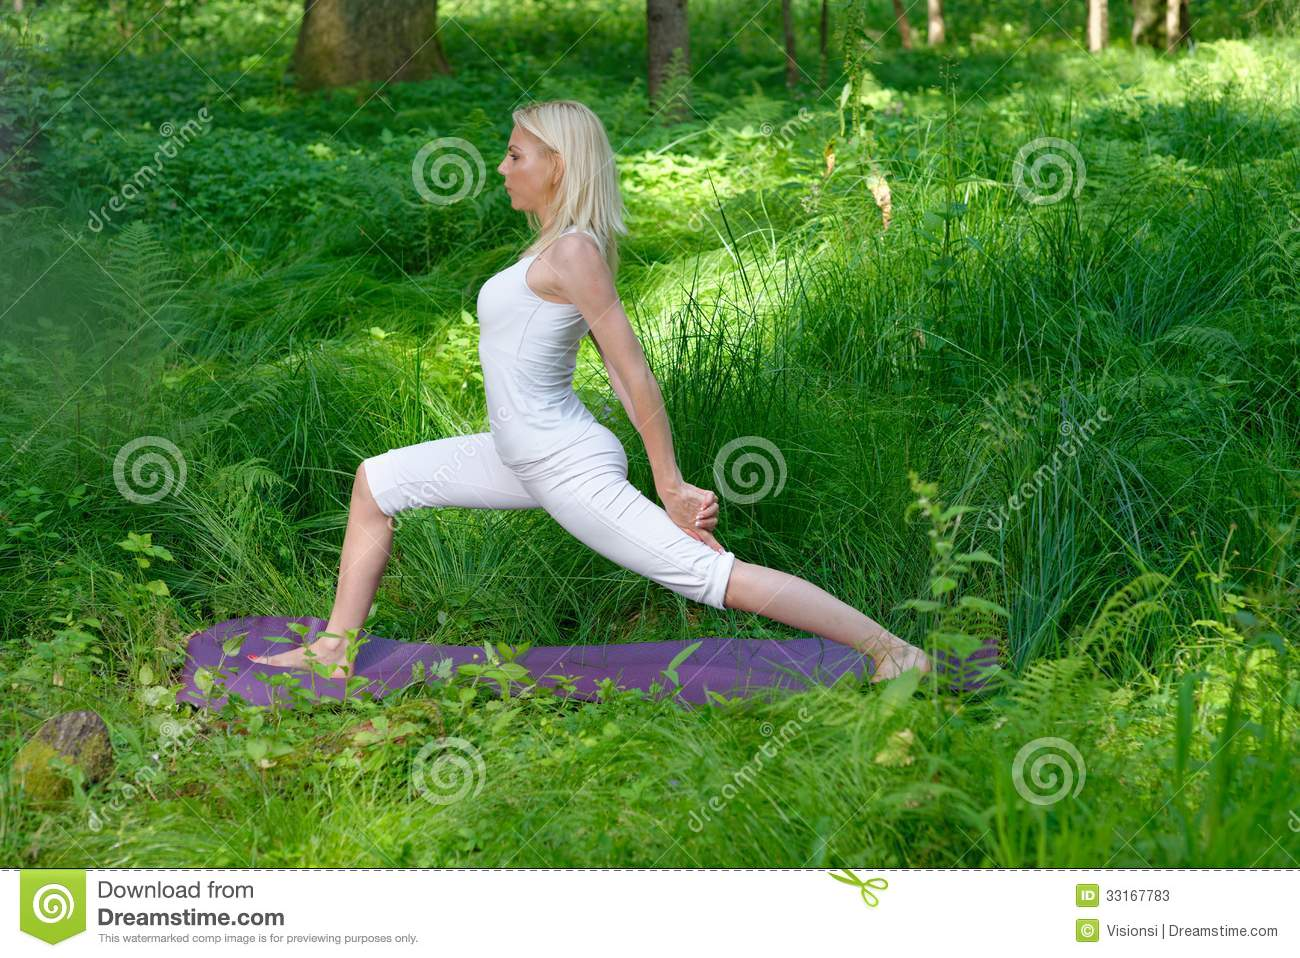 Yoga in nature stock image. Image of beauty, girl ...